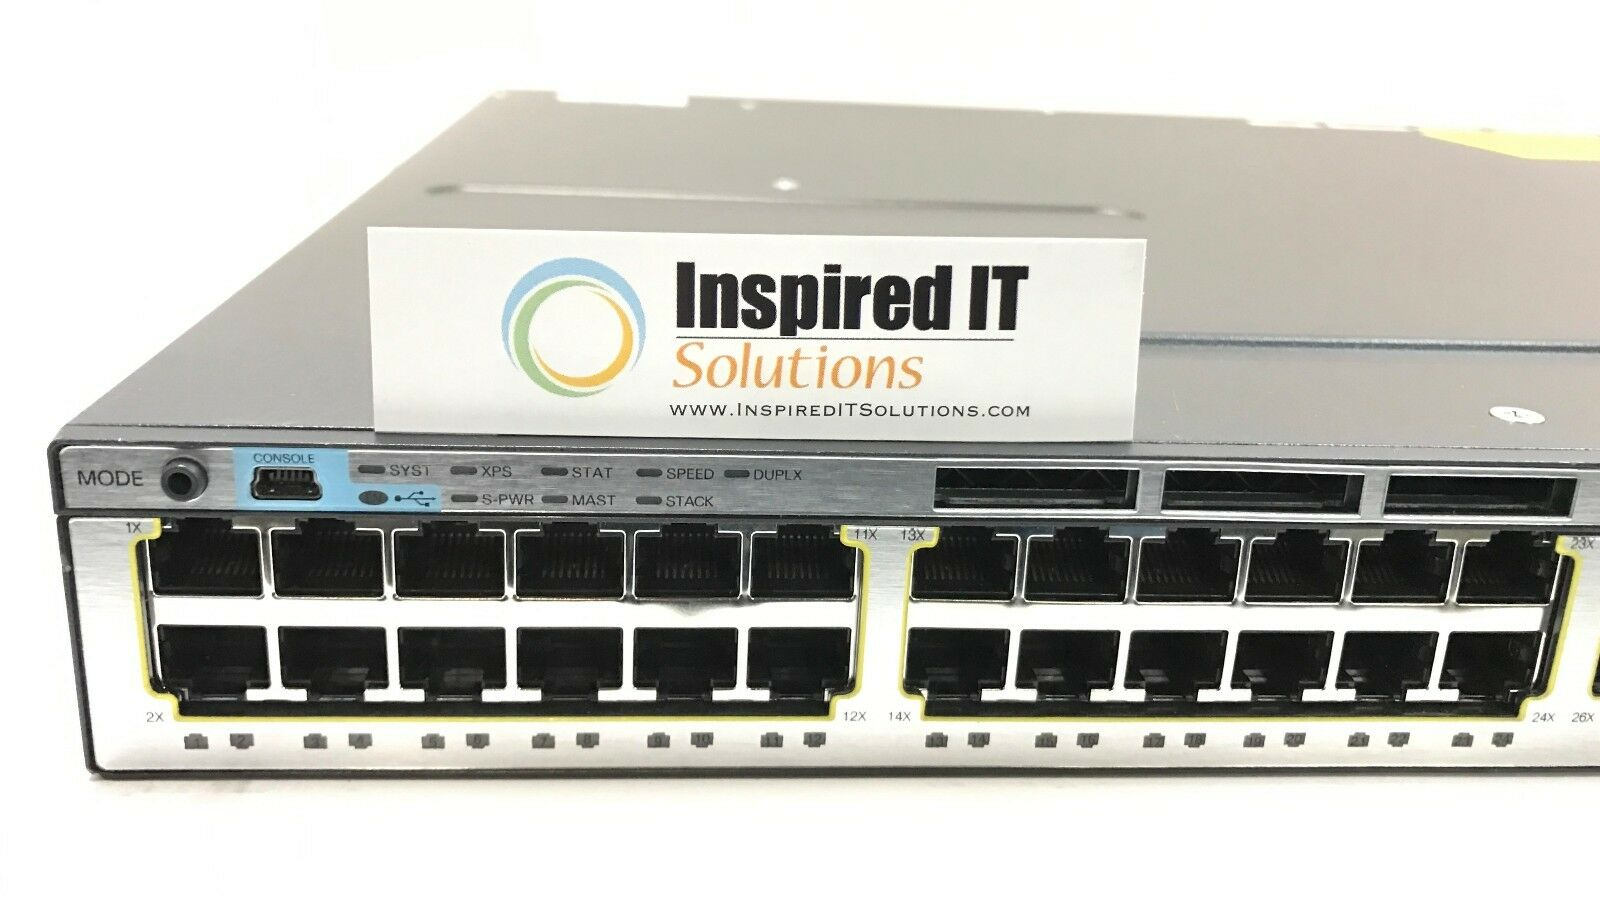 Ws C3750x 48t L Cisco Catalyst 3750x 48 Port Lan Base 350w Ac 2960 S Switch With Vs Ip